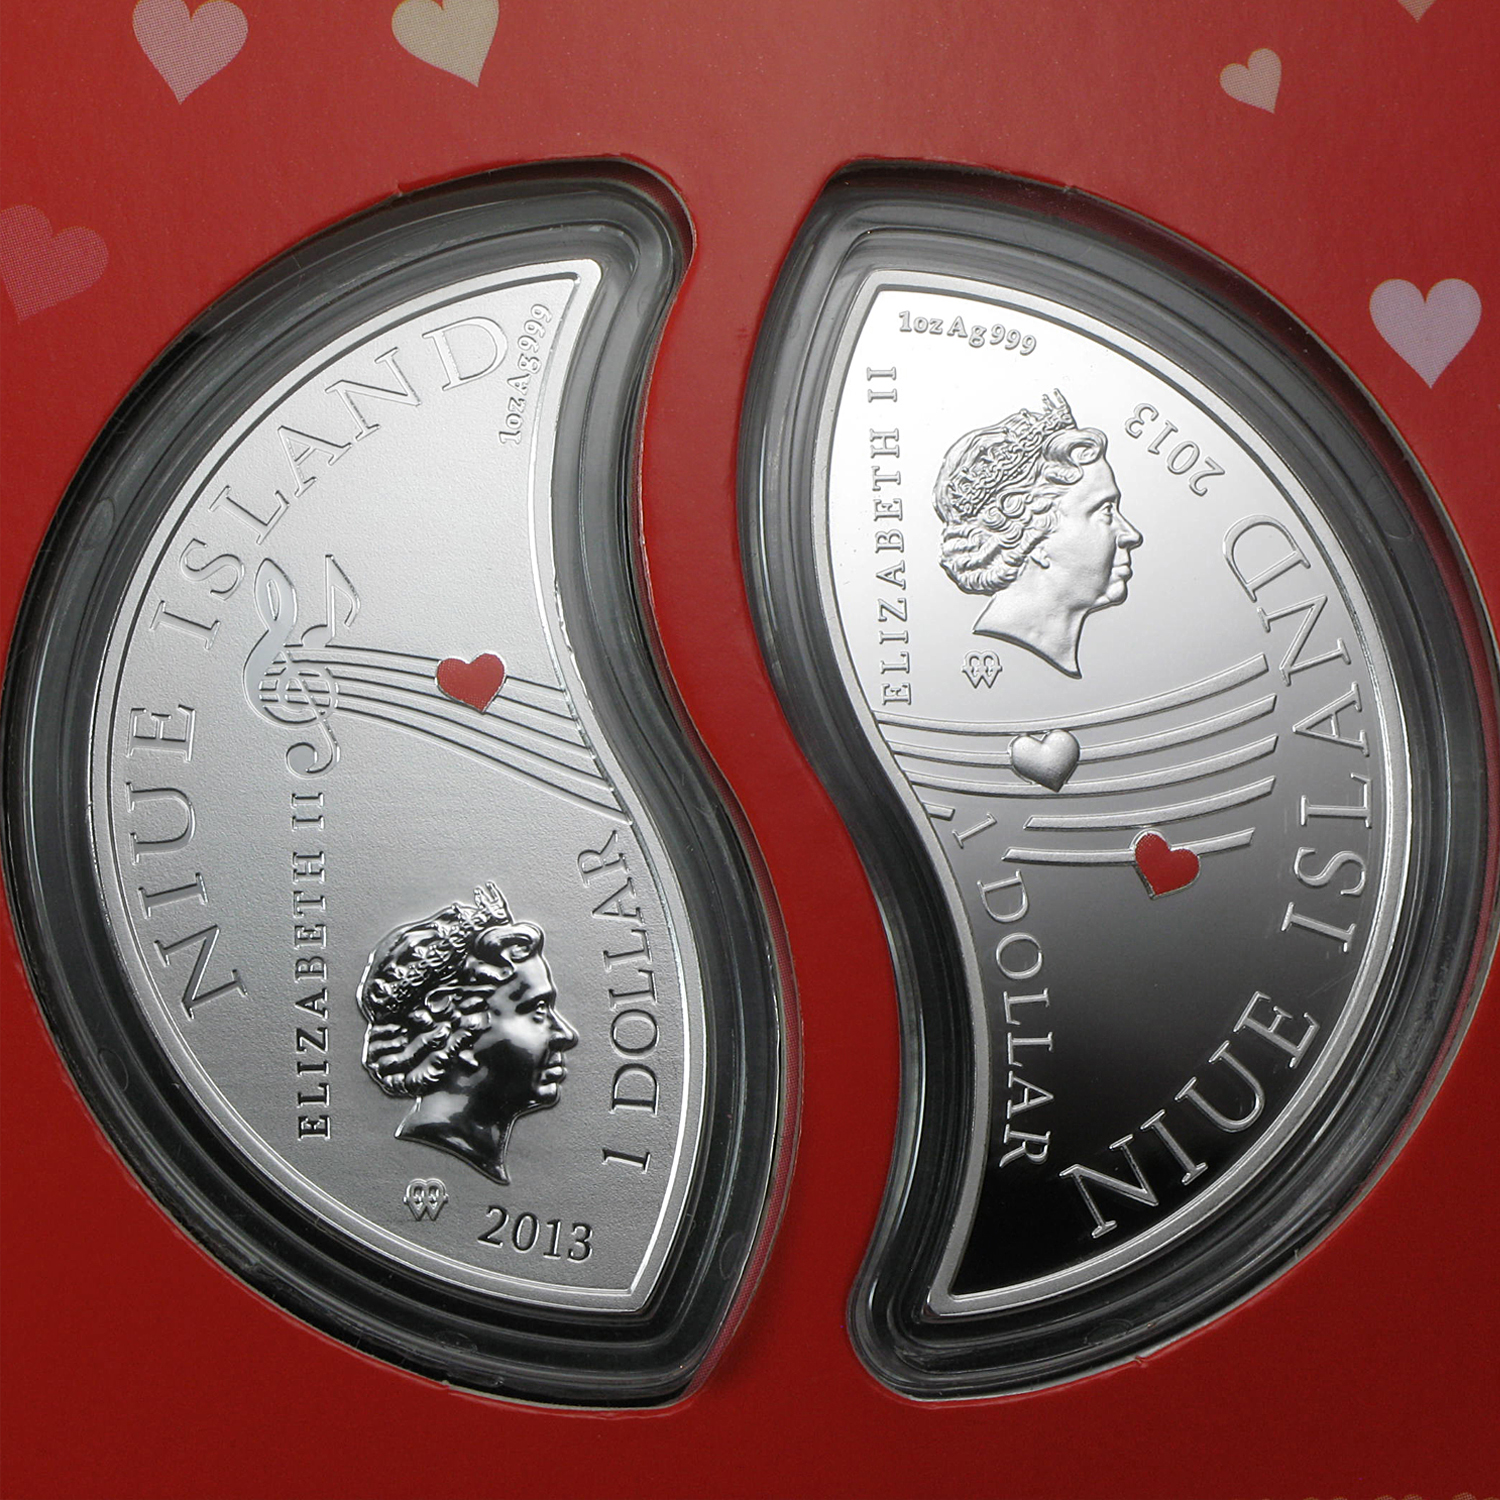 2013 Niue 2-Coin 2 oz Silver $1 In Love Proof Set